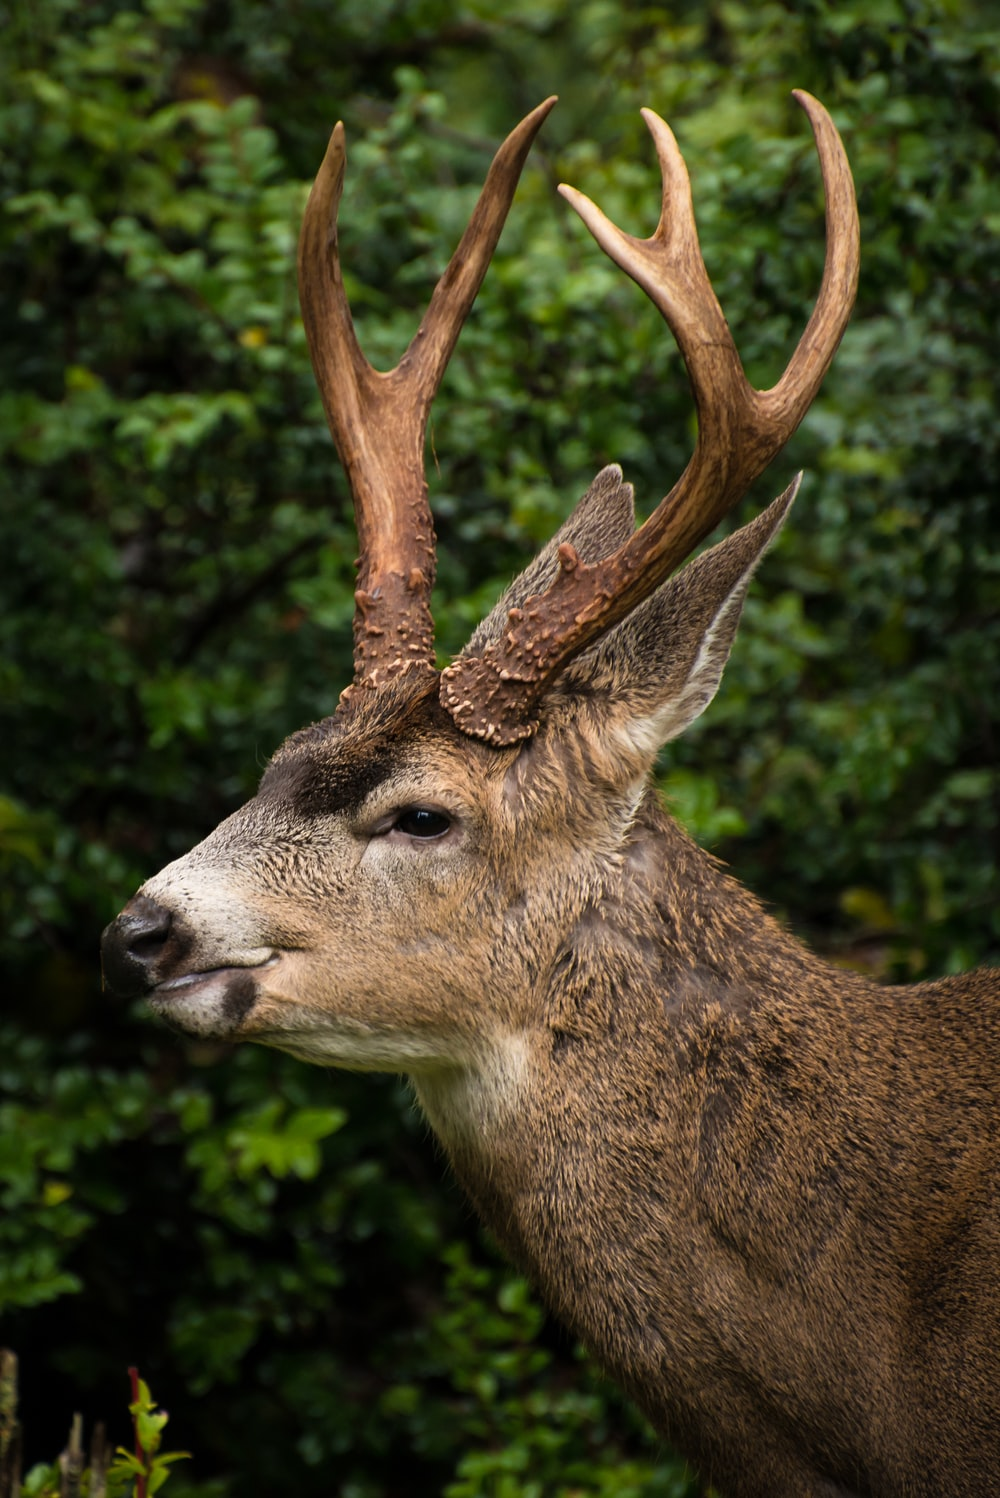 closeup photo of brown deer in forest